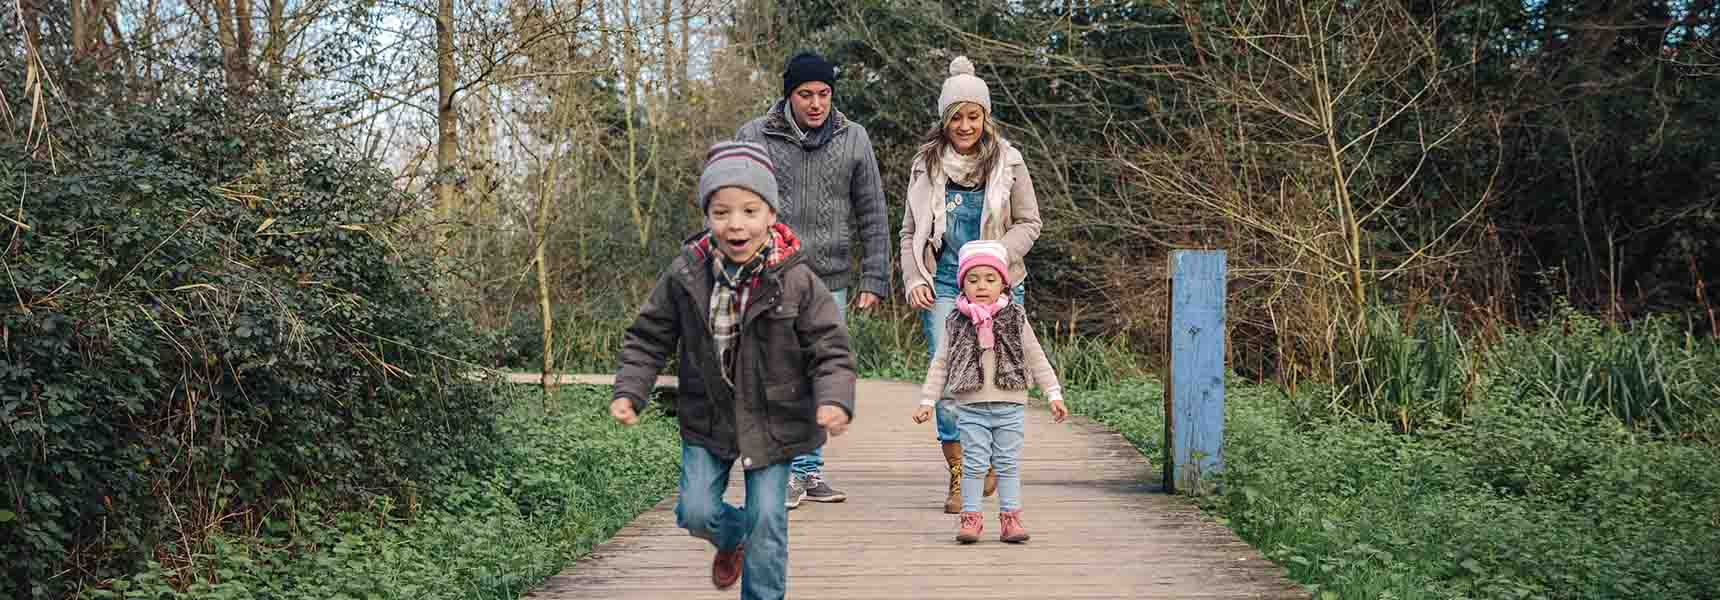 Family who is taking steps to save for holiday spending so it doesn't get out of control.